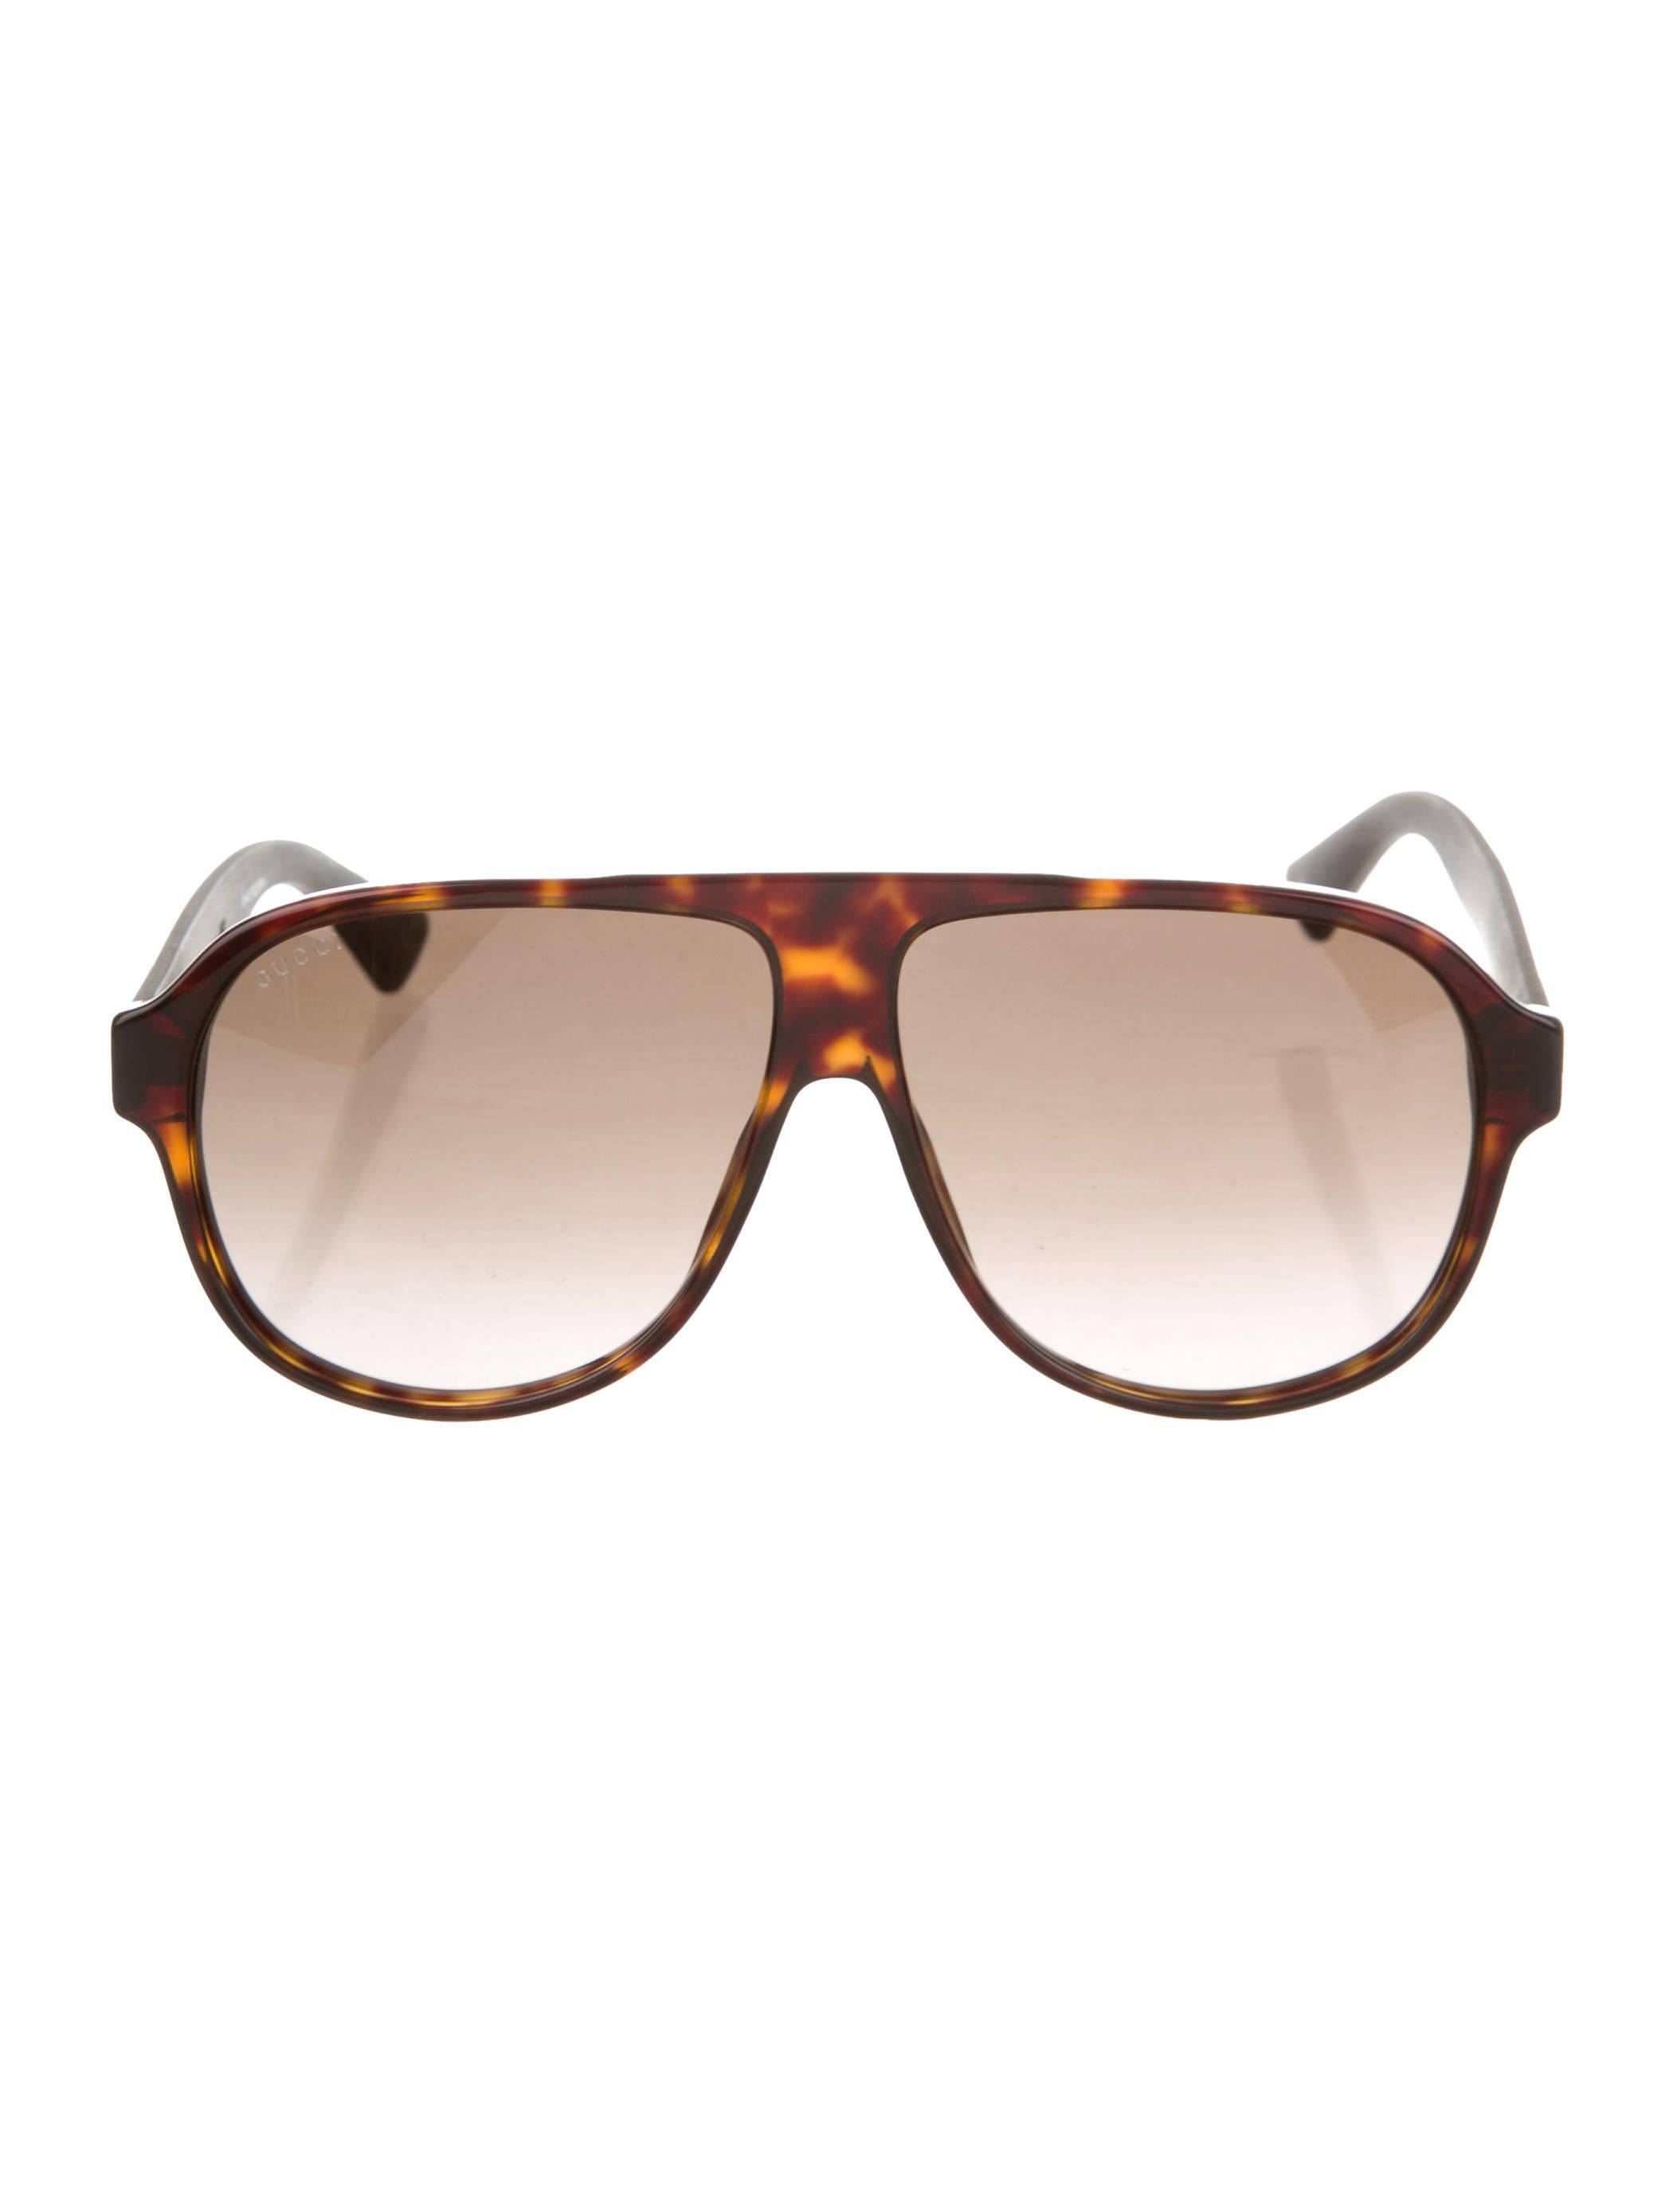 6c772f3da8 Men s brown acetate Gucci aviator sunglasses with round tinted lenses and  Web detail at temples. Includes case